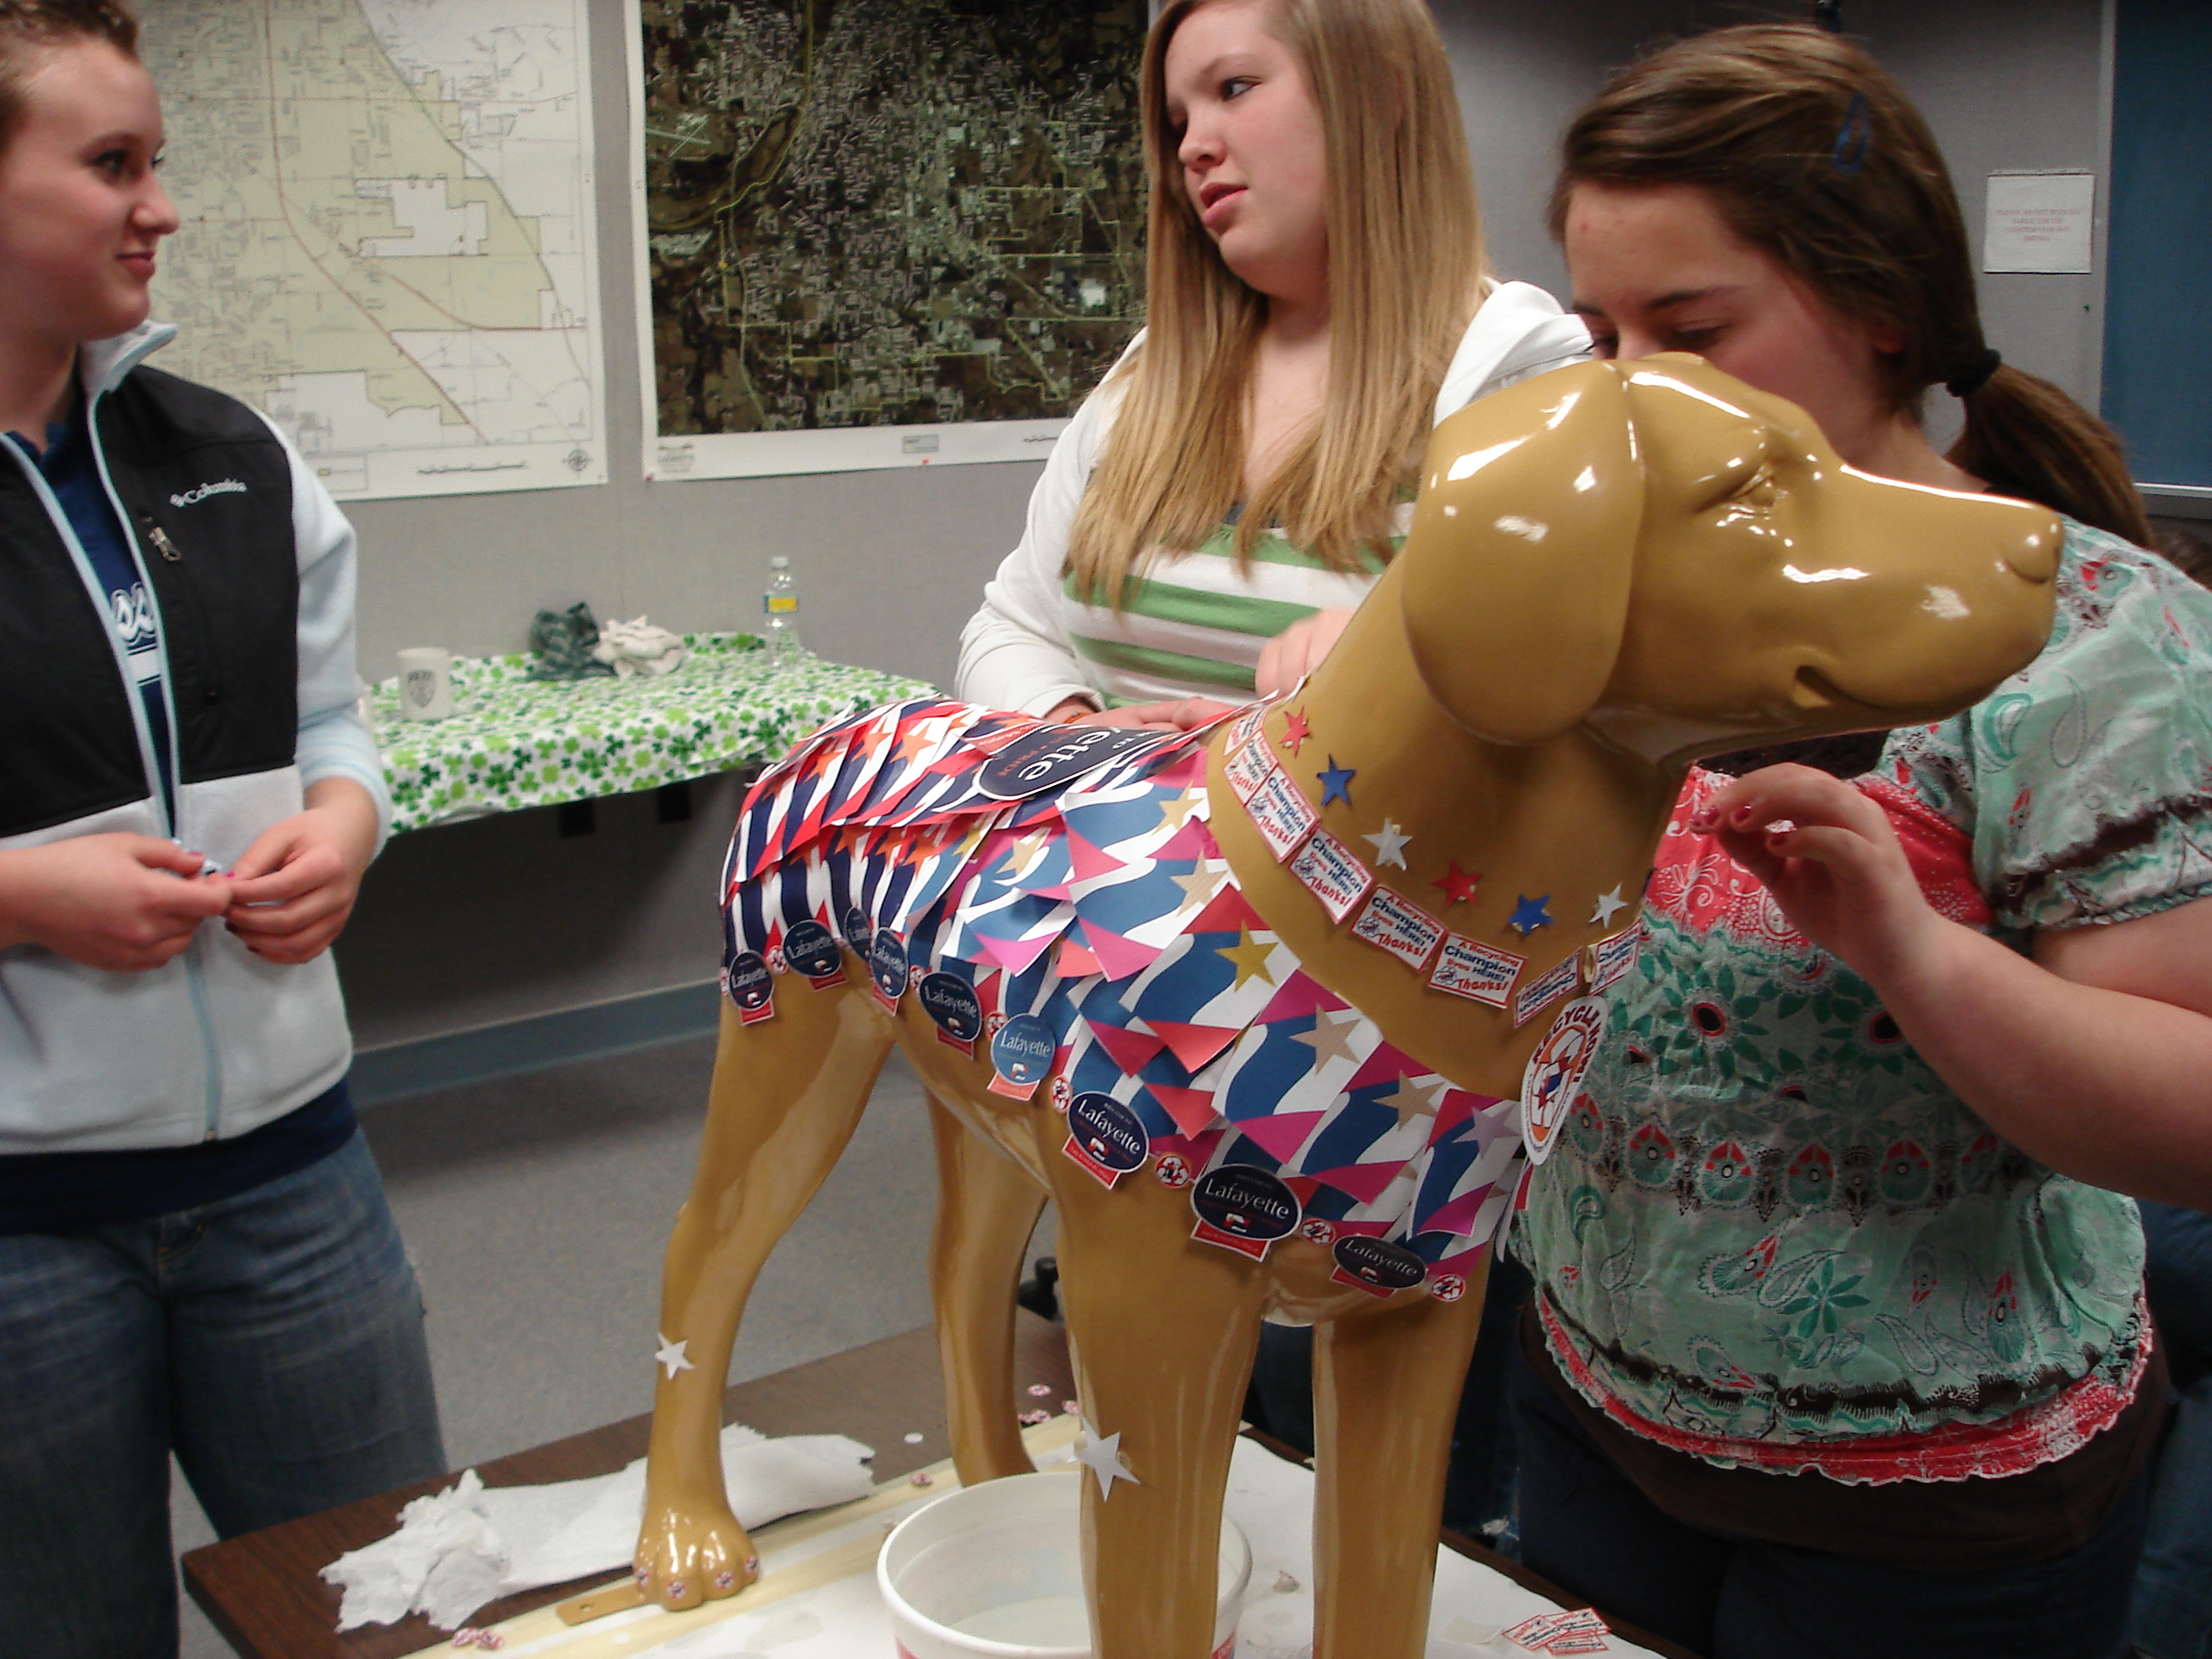 3 teens decorating a fake, plastic dog